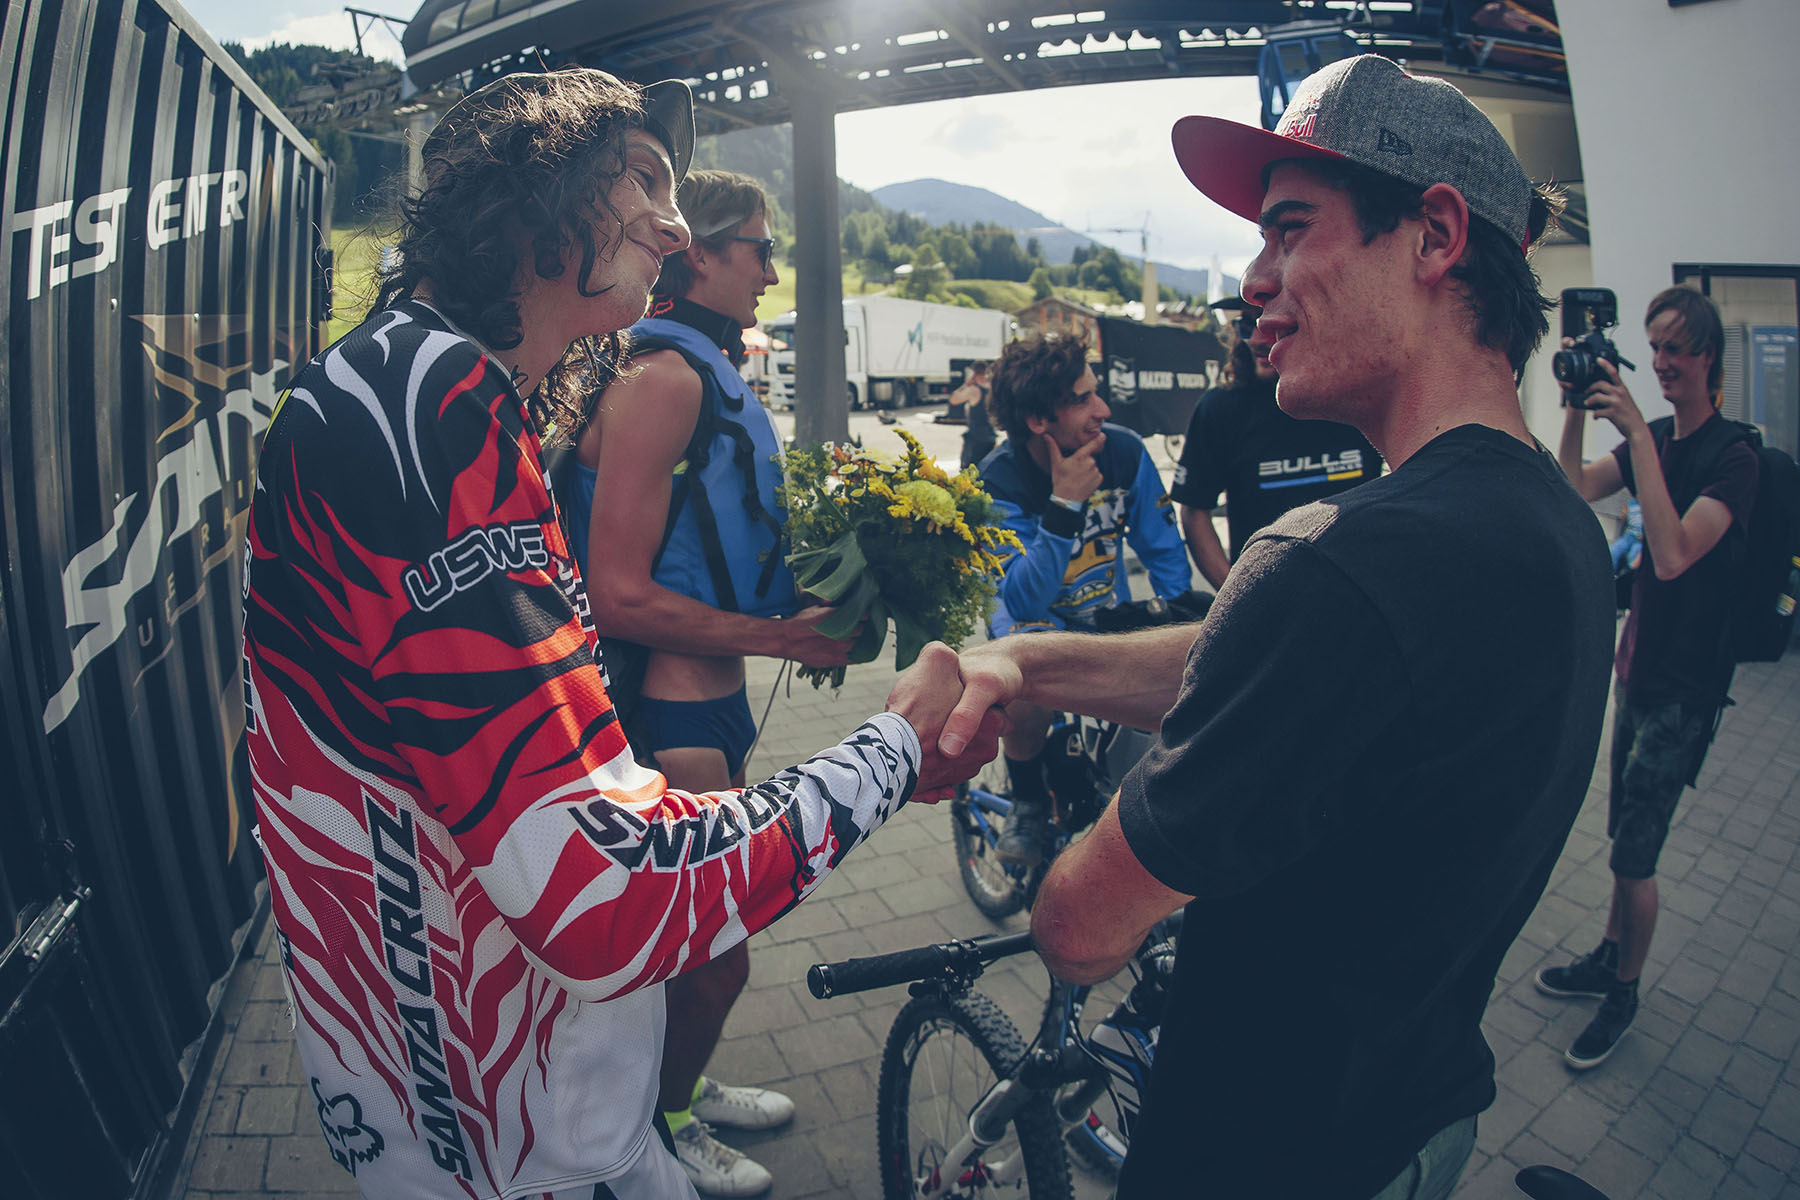 No hard feeling, Josh even though taking the win, was genuinely gutted for Bruni after his crash.